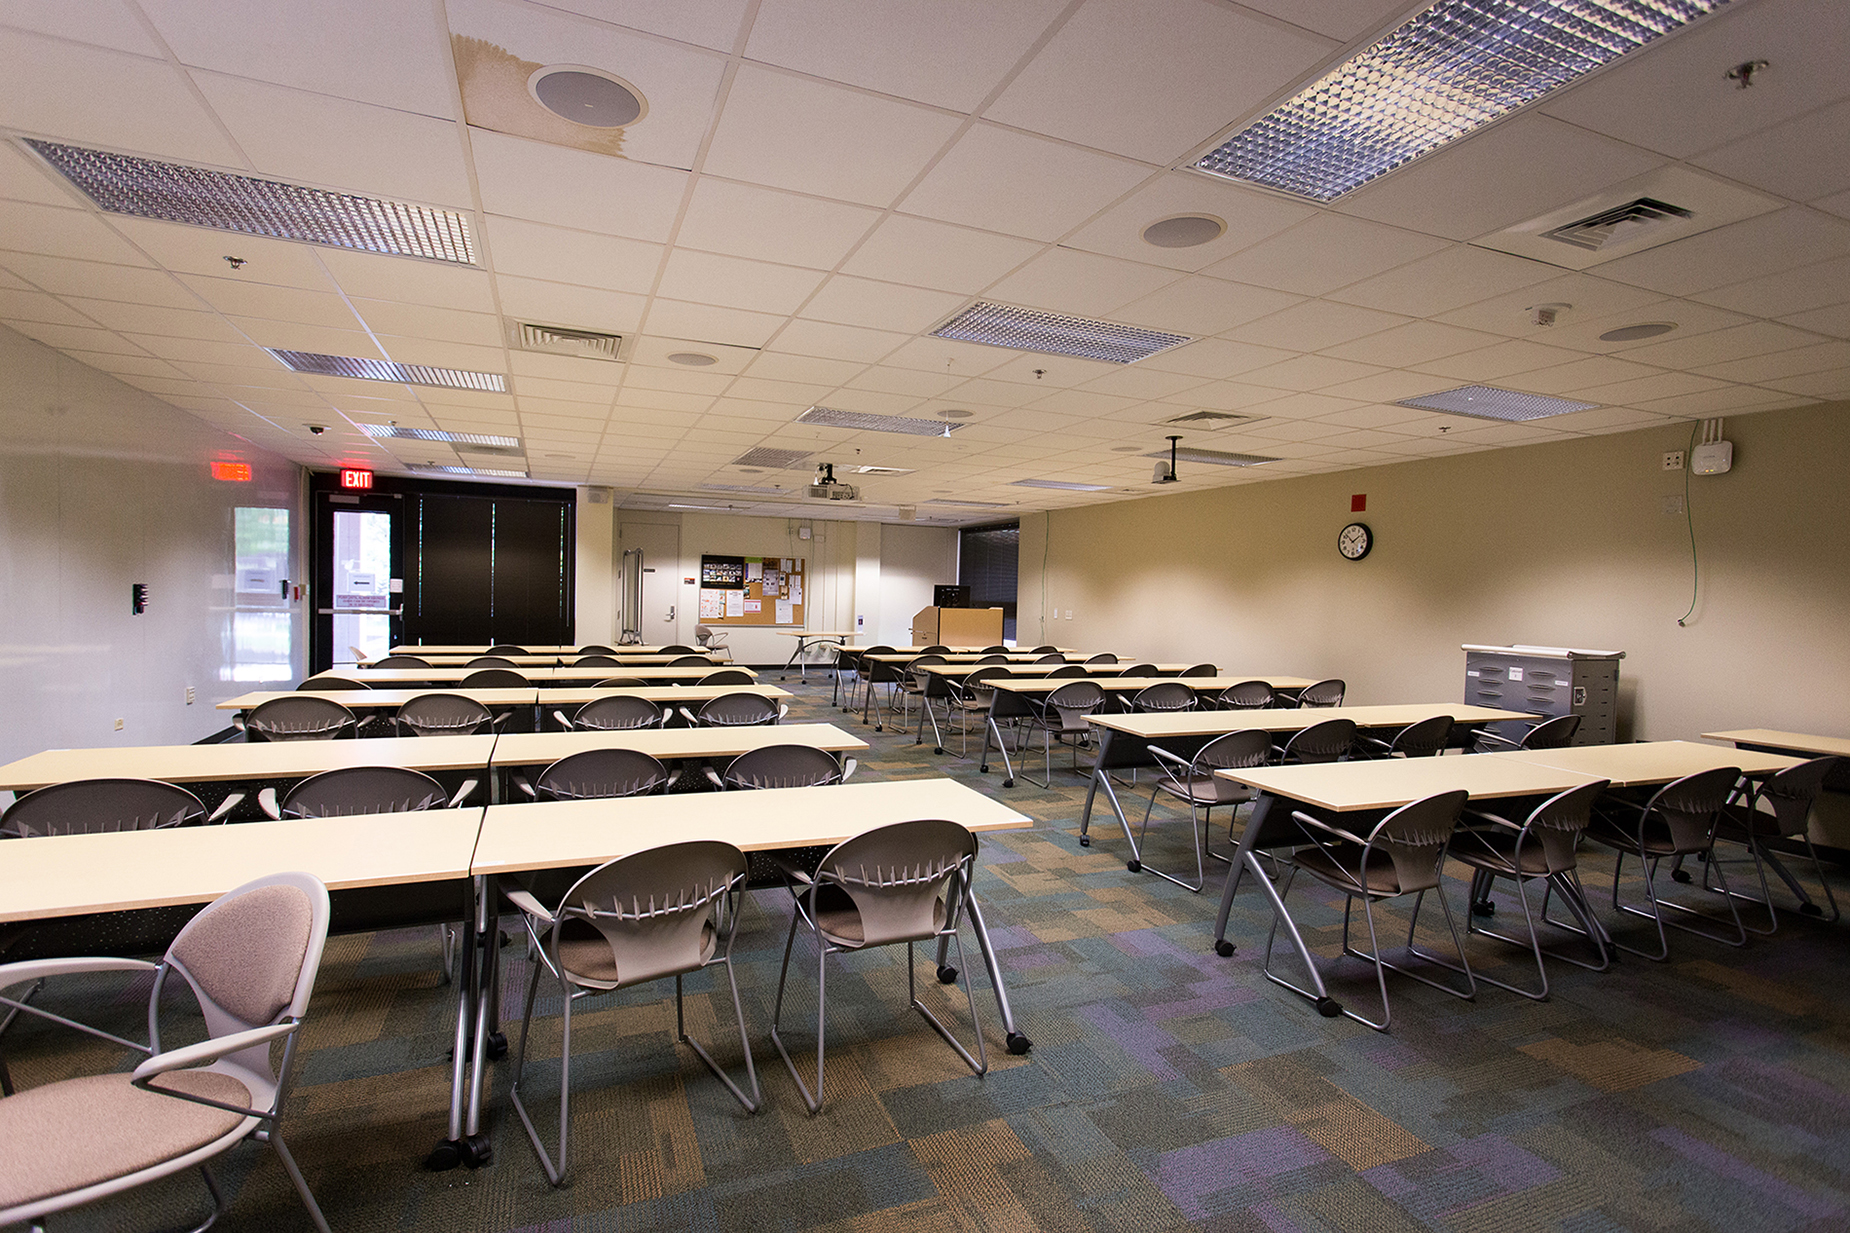 A large multipurpose room with tables and chairs at the Veterinary Medicine Library